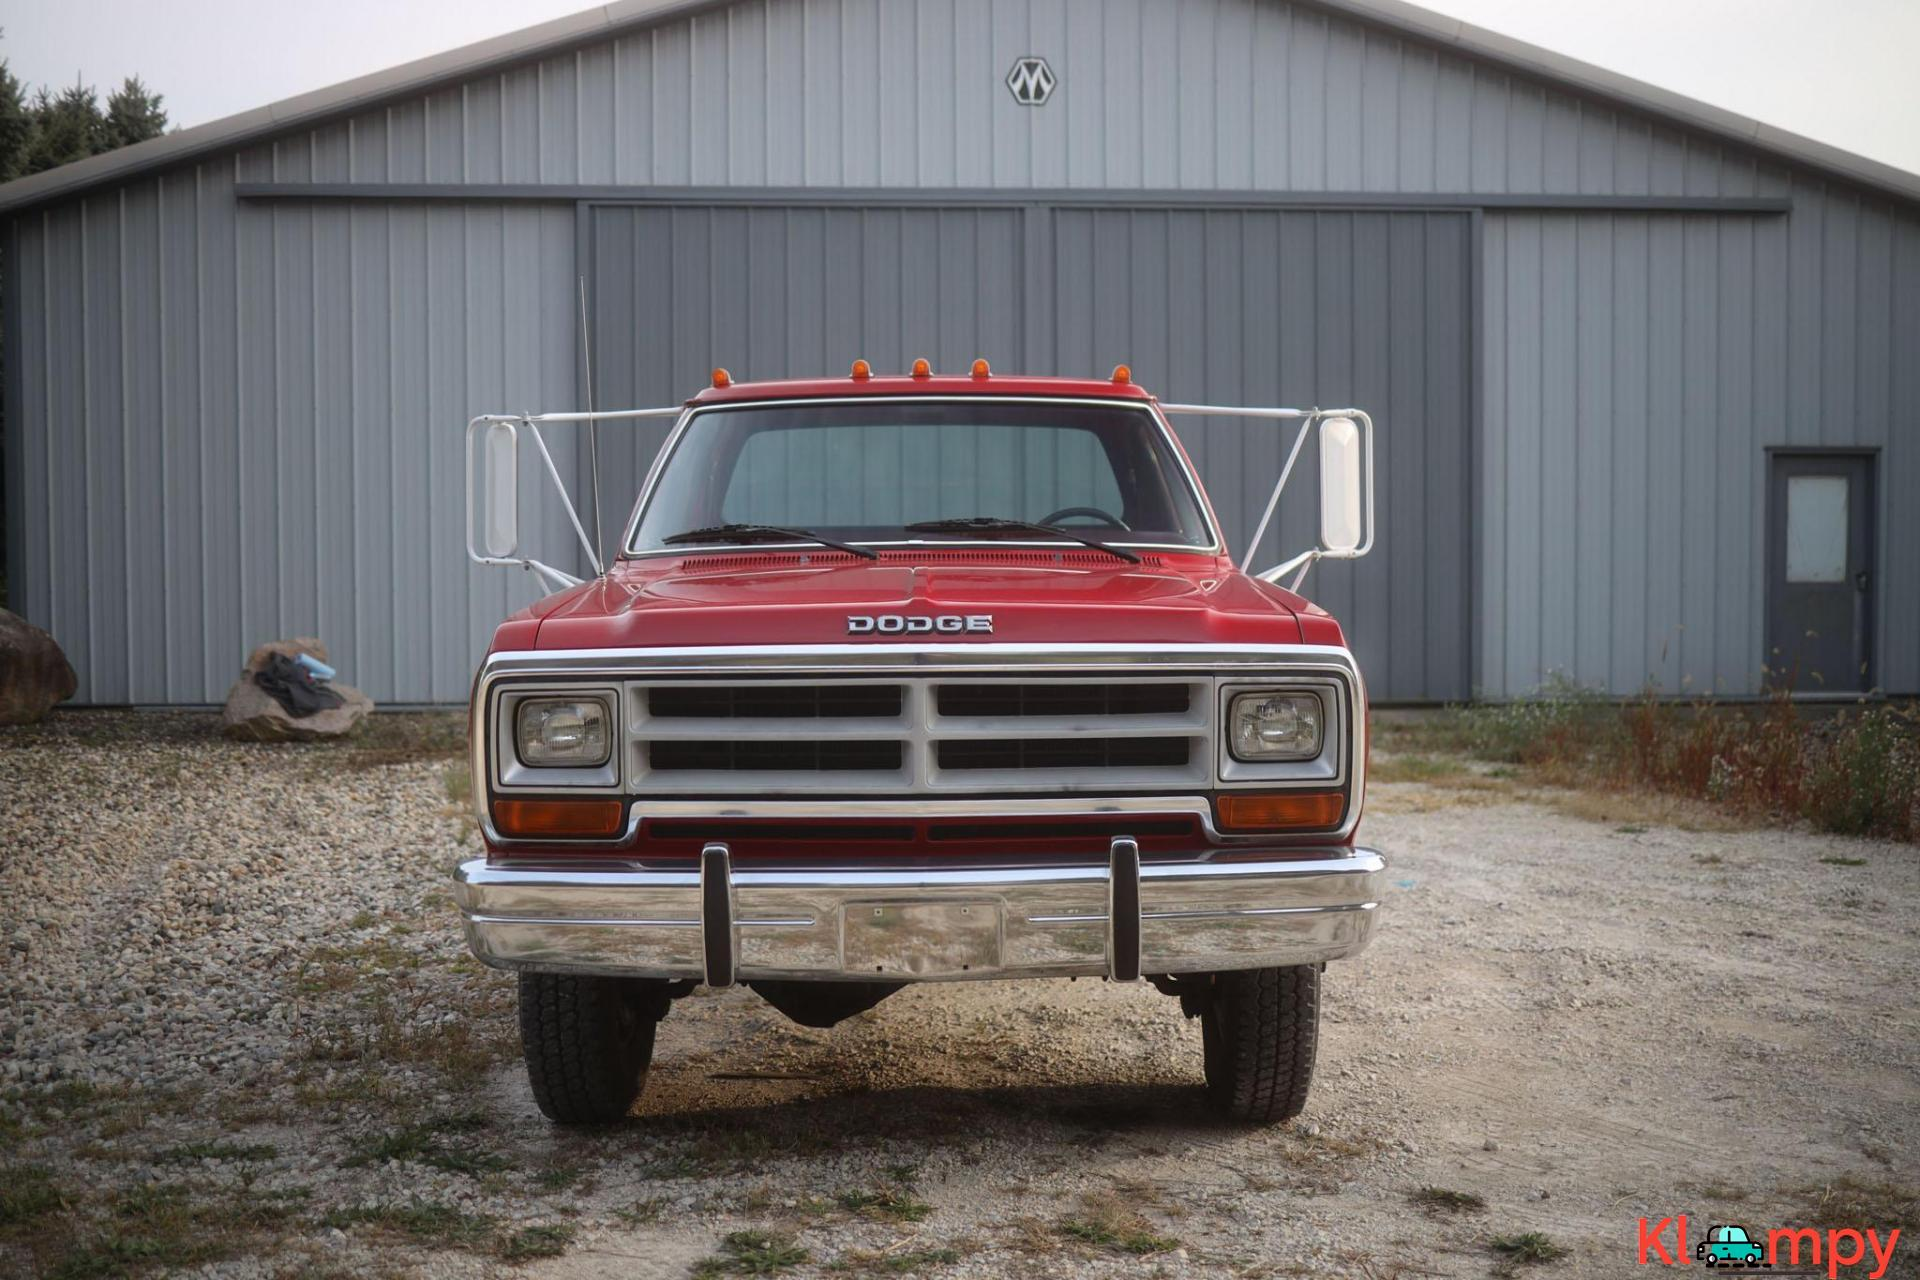 1989 Dodge Power Ram W350 4×4 Truck - 4/20